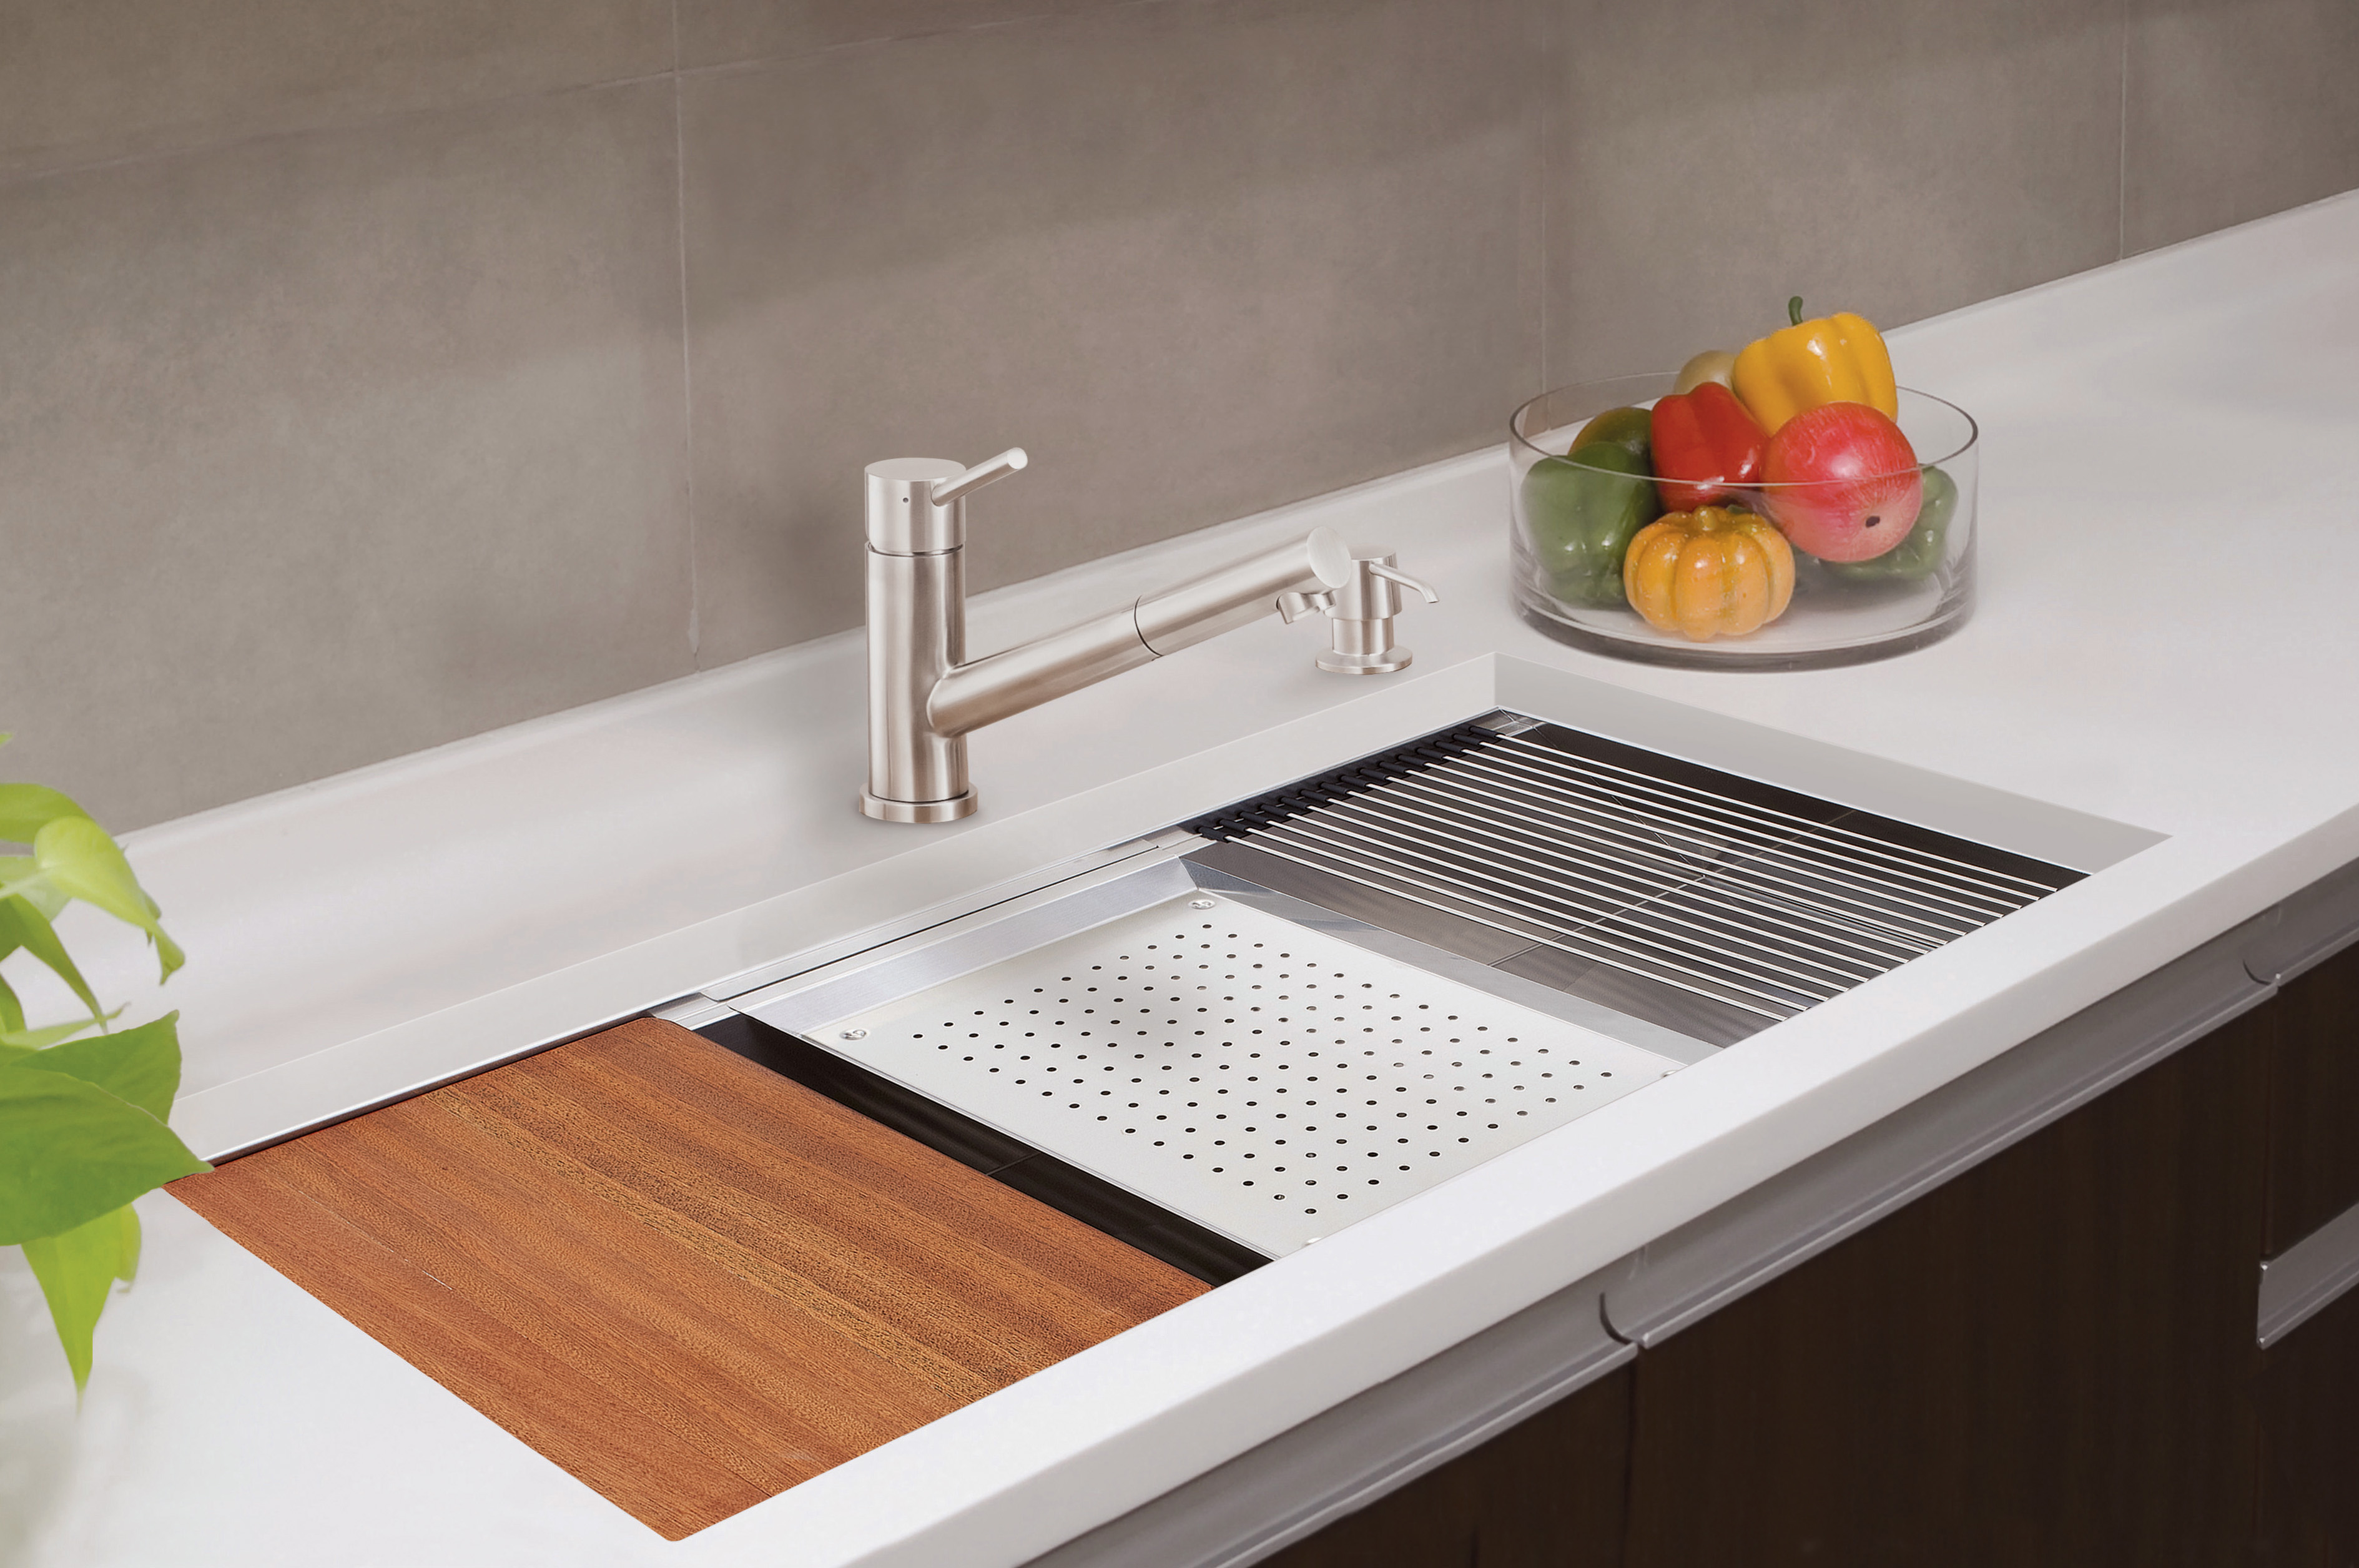 lenova ledge prep sink brings sleek style functionality stainless kitchen sinks Lenova Ledge Prep Sink Brings Sleek Style Functionality Remodeling Sinks Kitchen Products Lenova